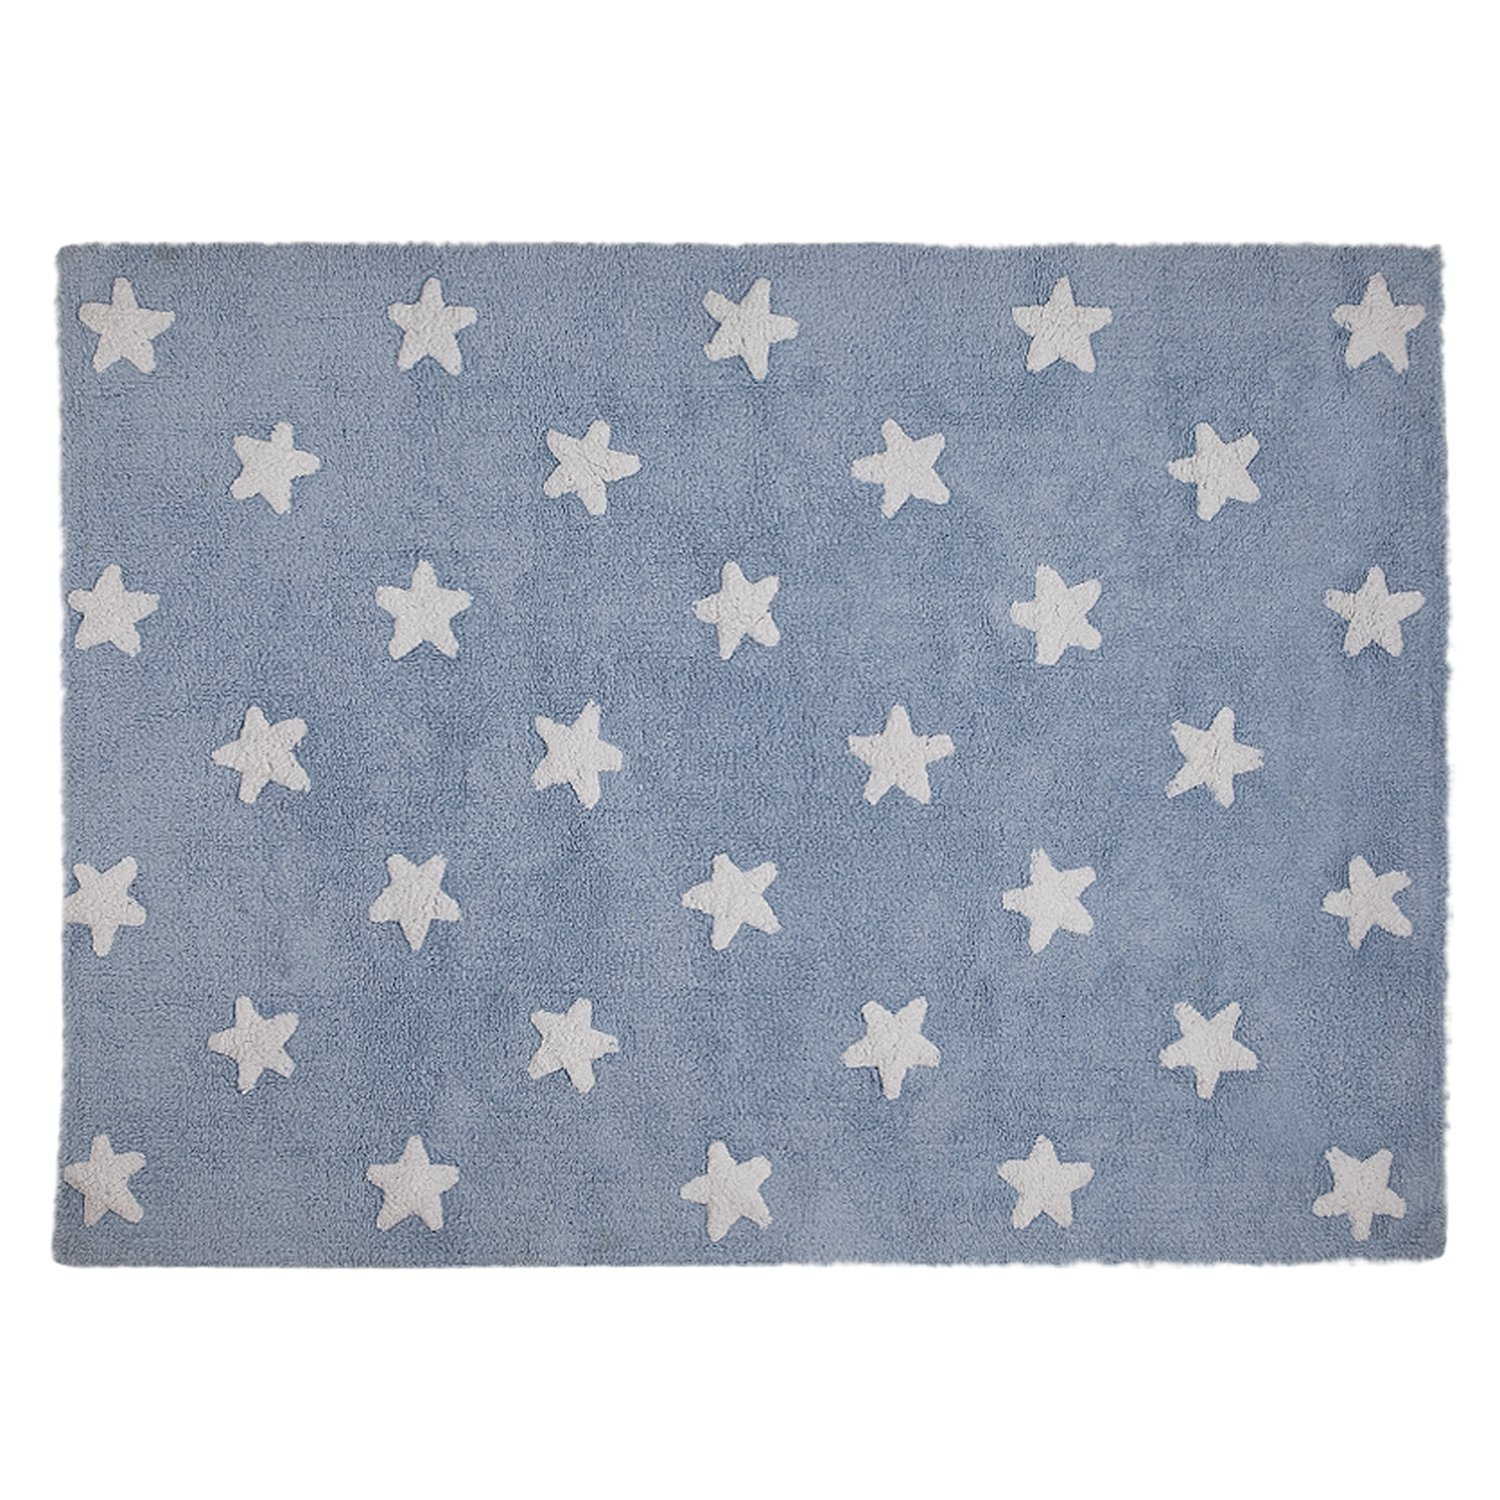 Lorena Canals Washable Rug (Blue Stars/White) Blue Stars White C-A-SW